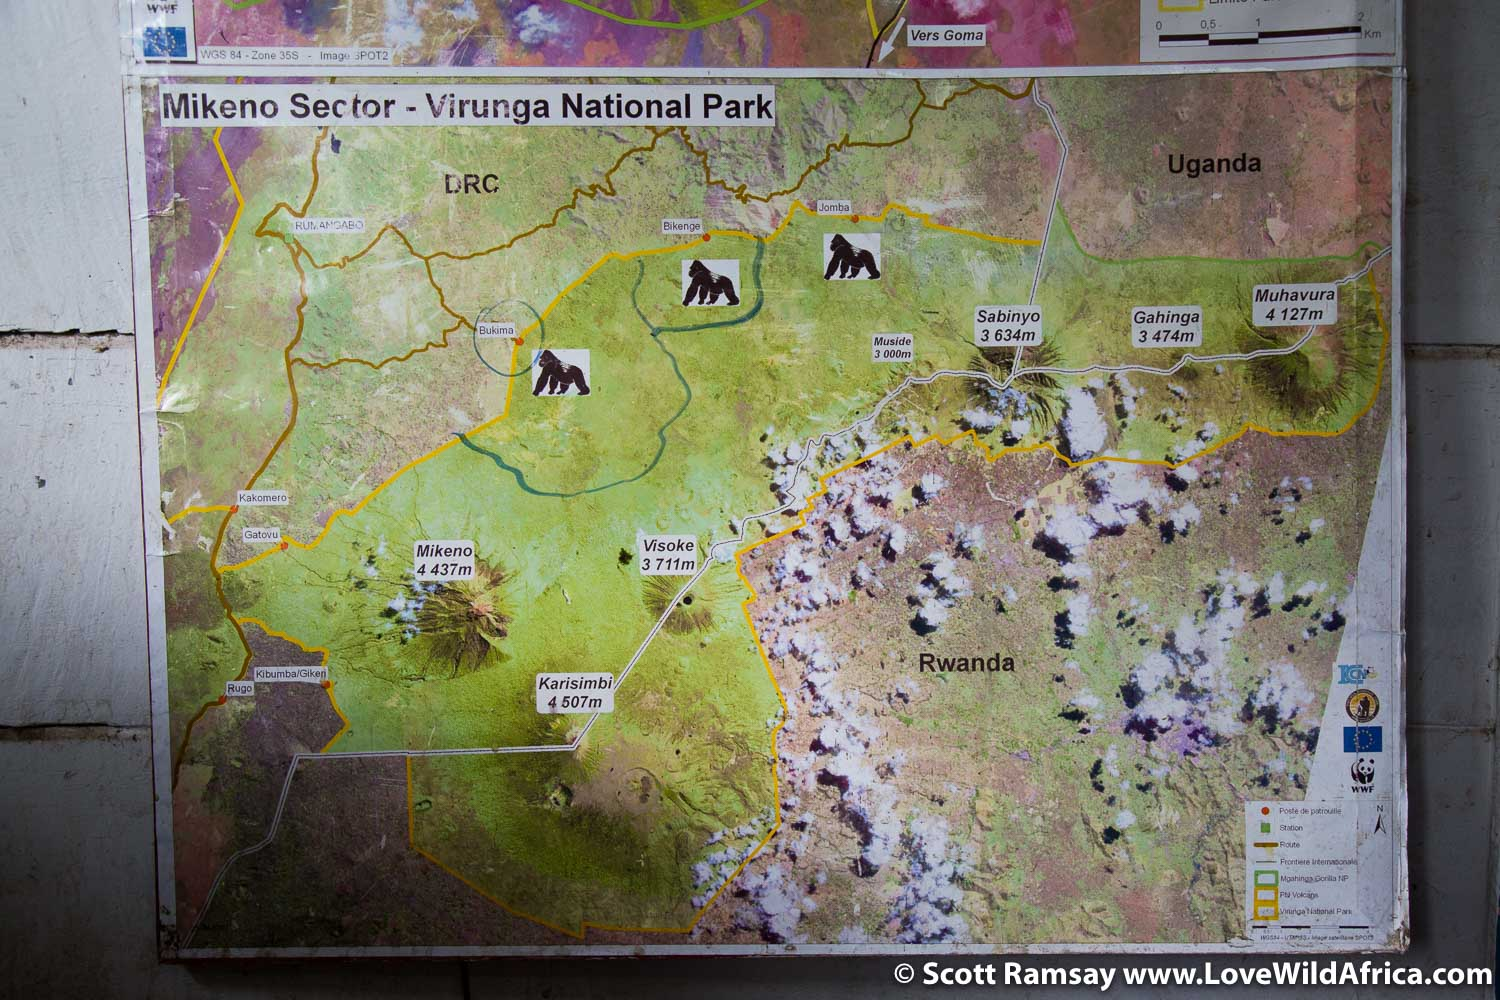 The map on the wall of the ranger post, showing the region, its volcanoes, and where the gorilla families are located.